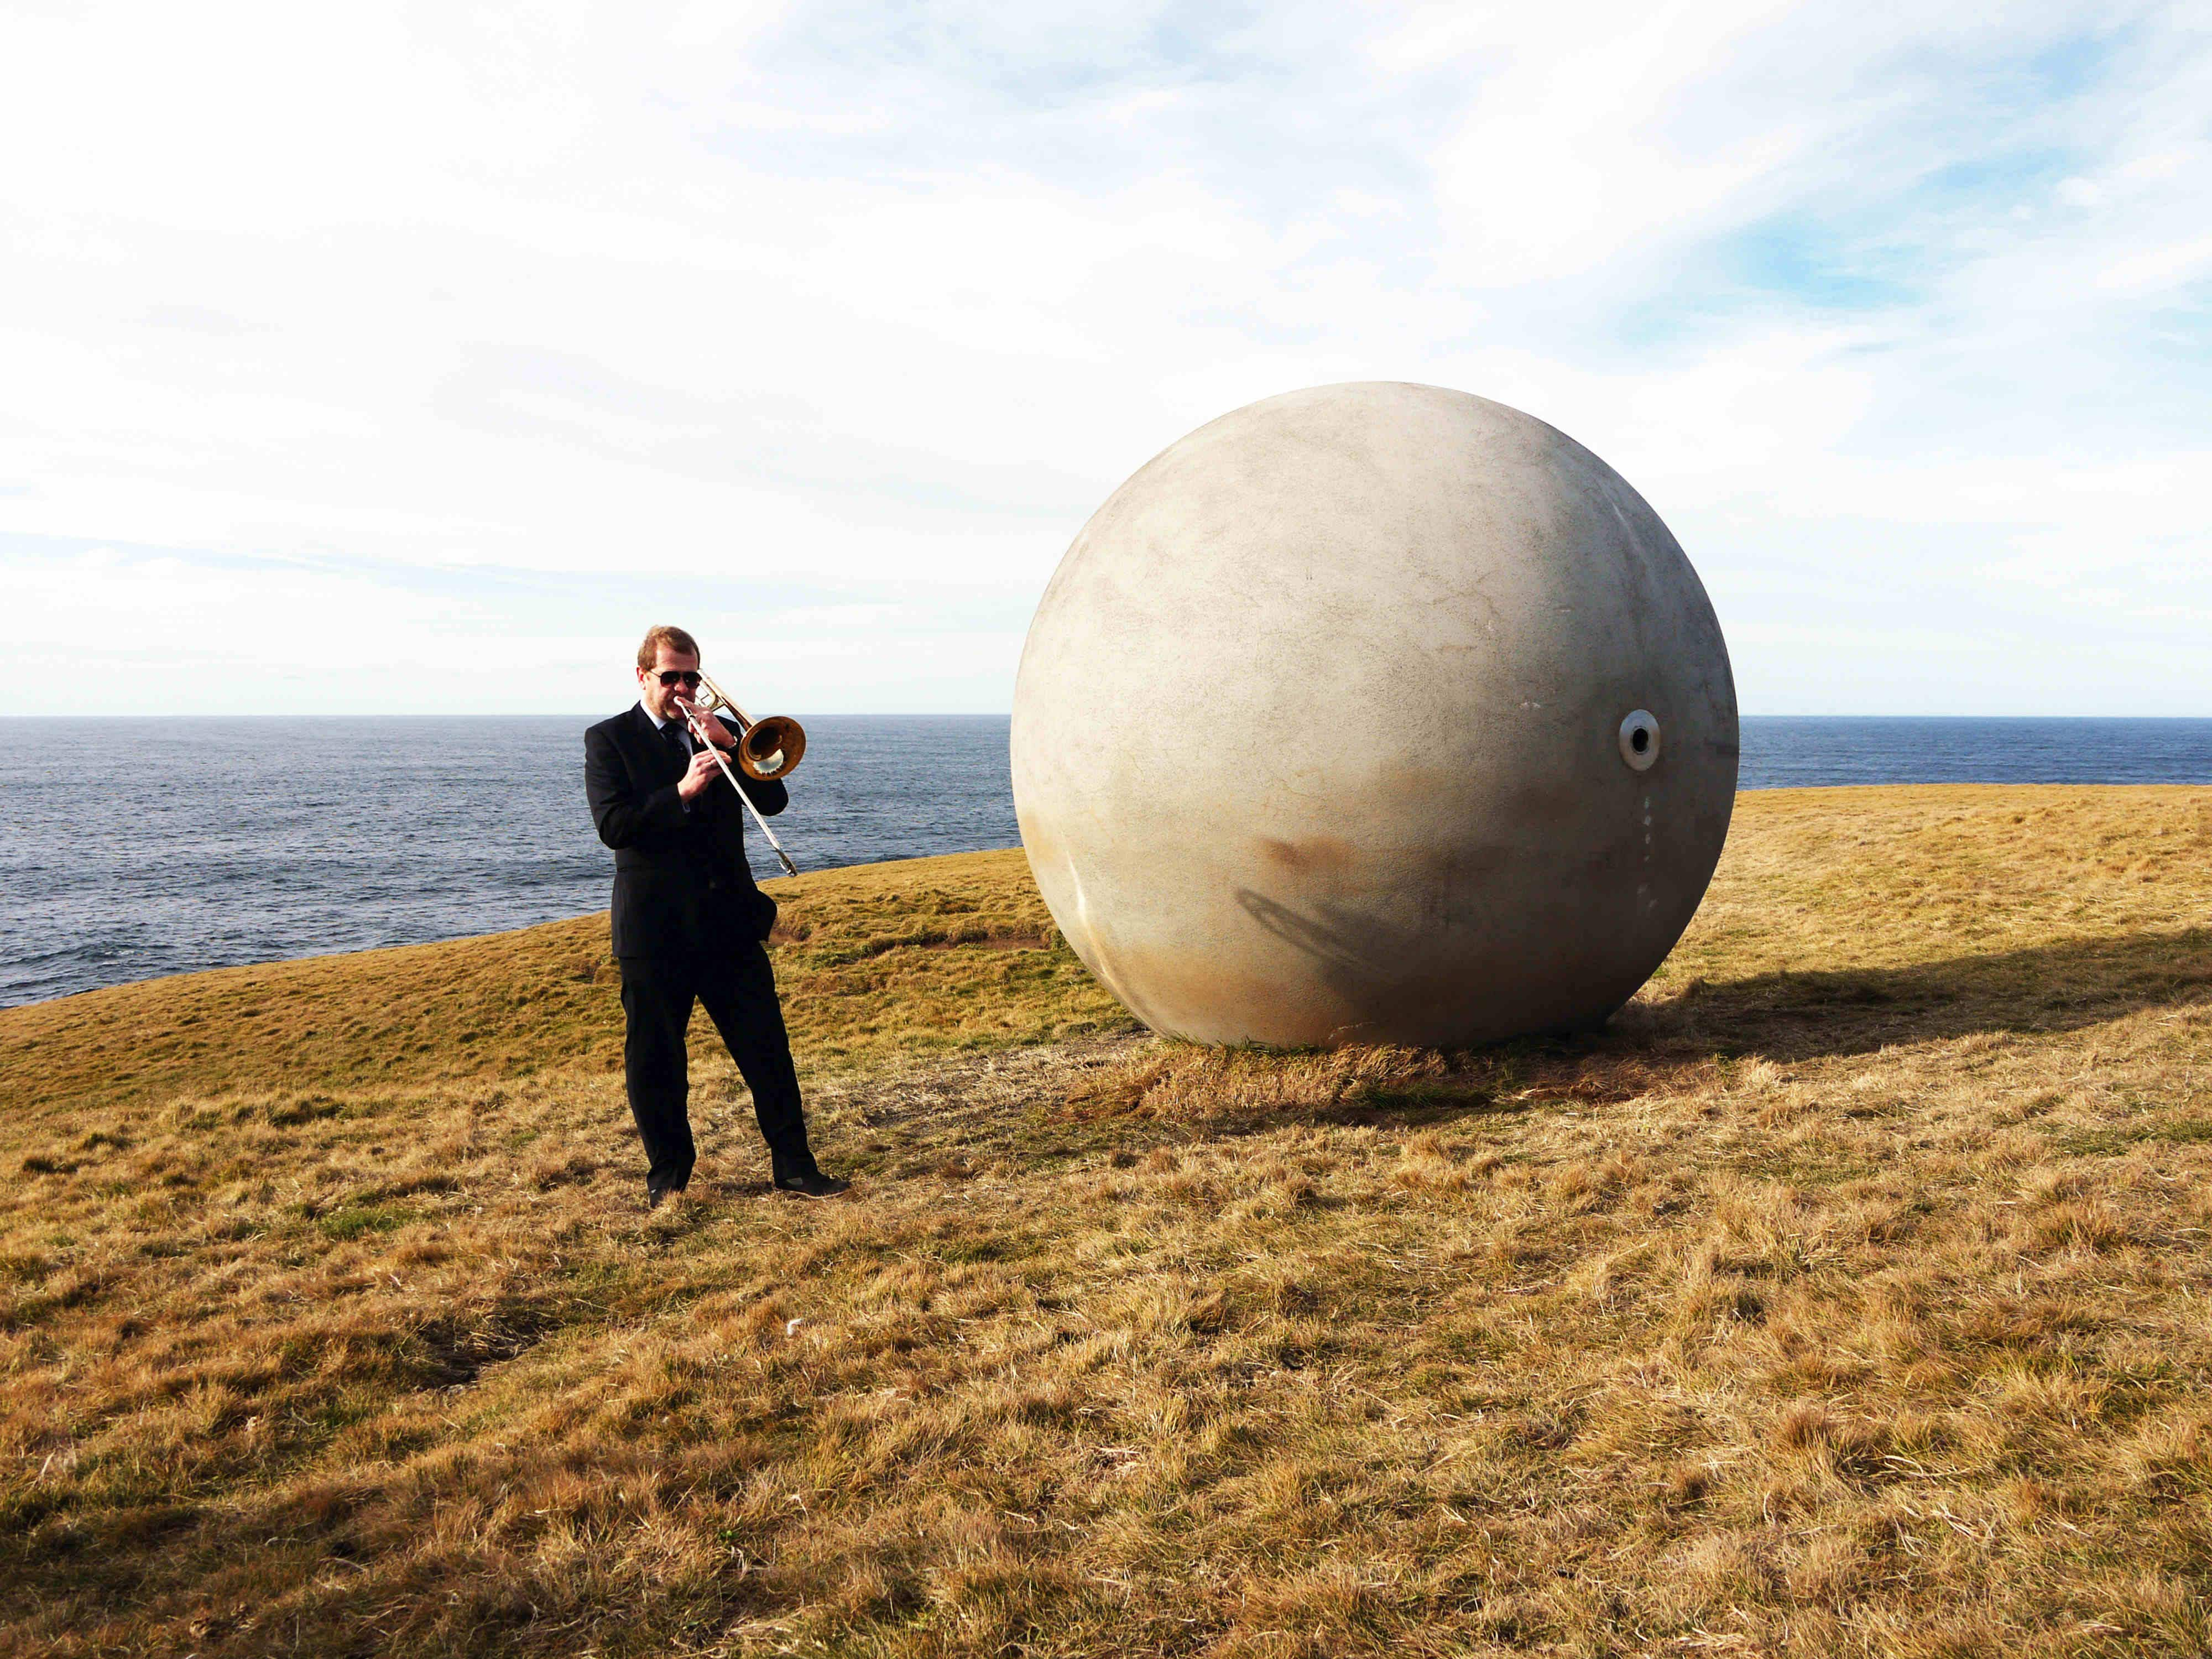 How this giant sphere in Iceland is keeping track of where the Arctic Circle is